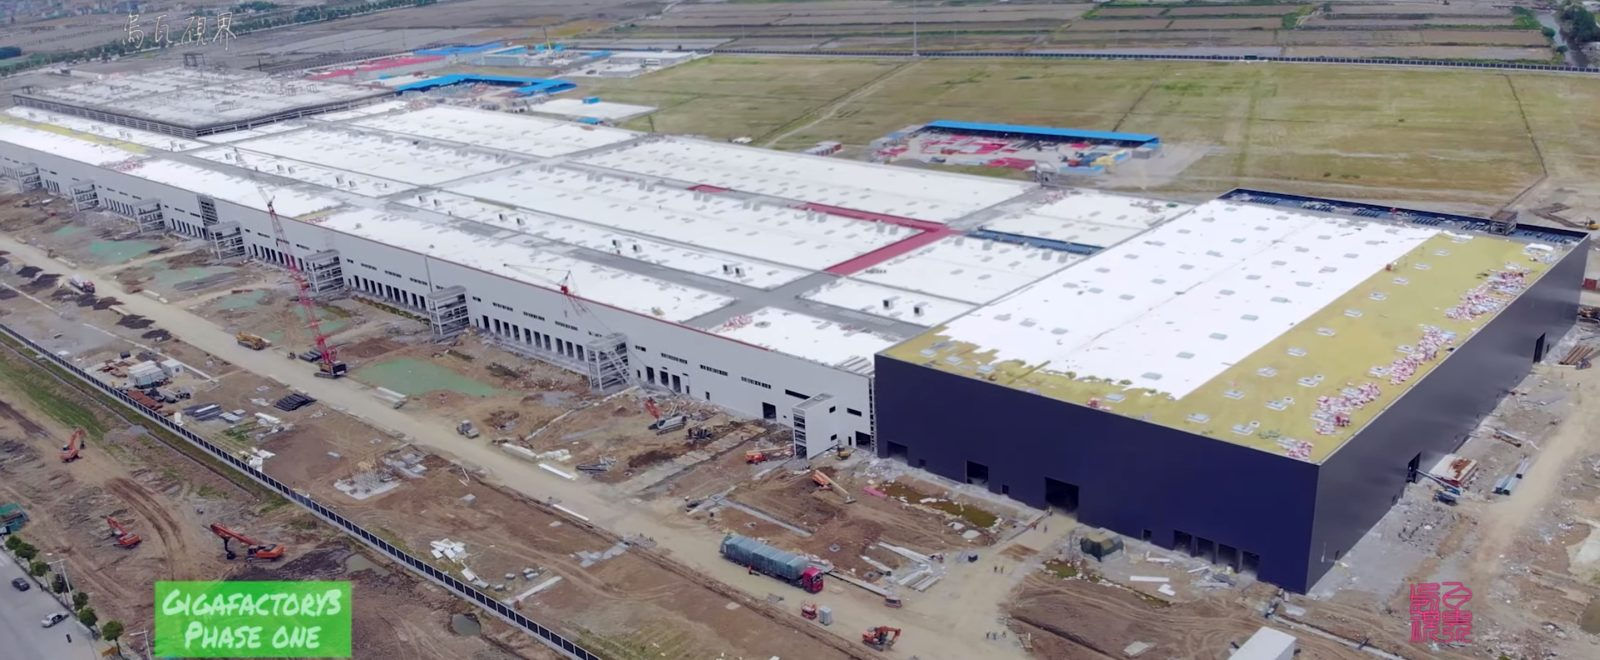 Tesla starts work on substation to power Gigafactory 3 ahead of production